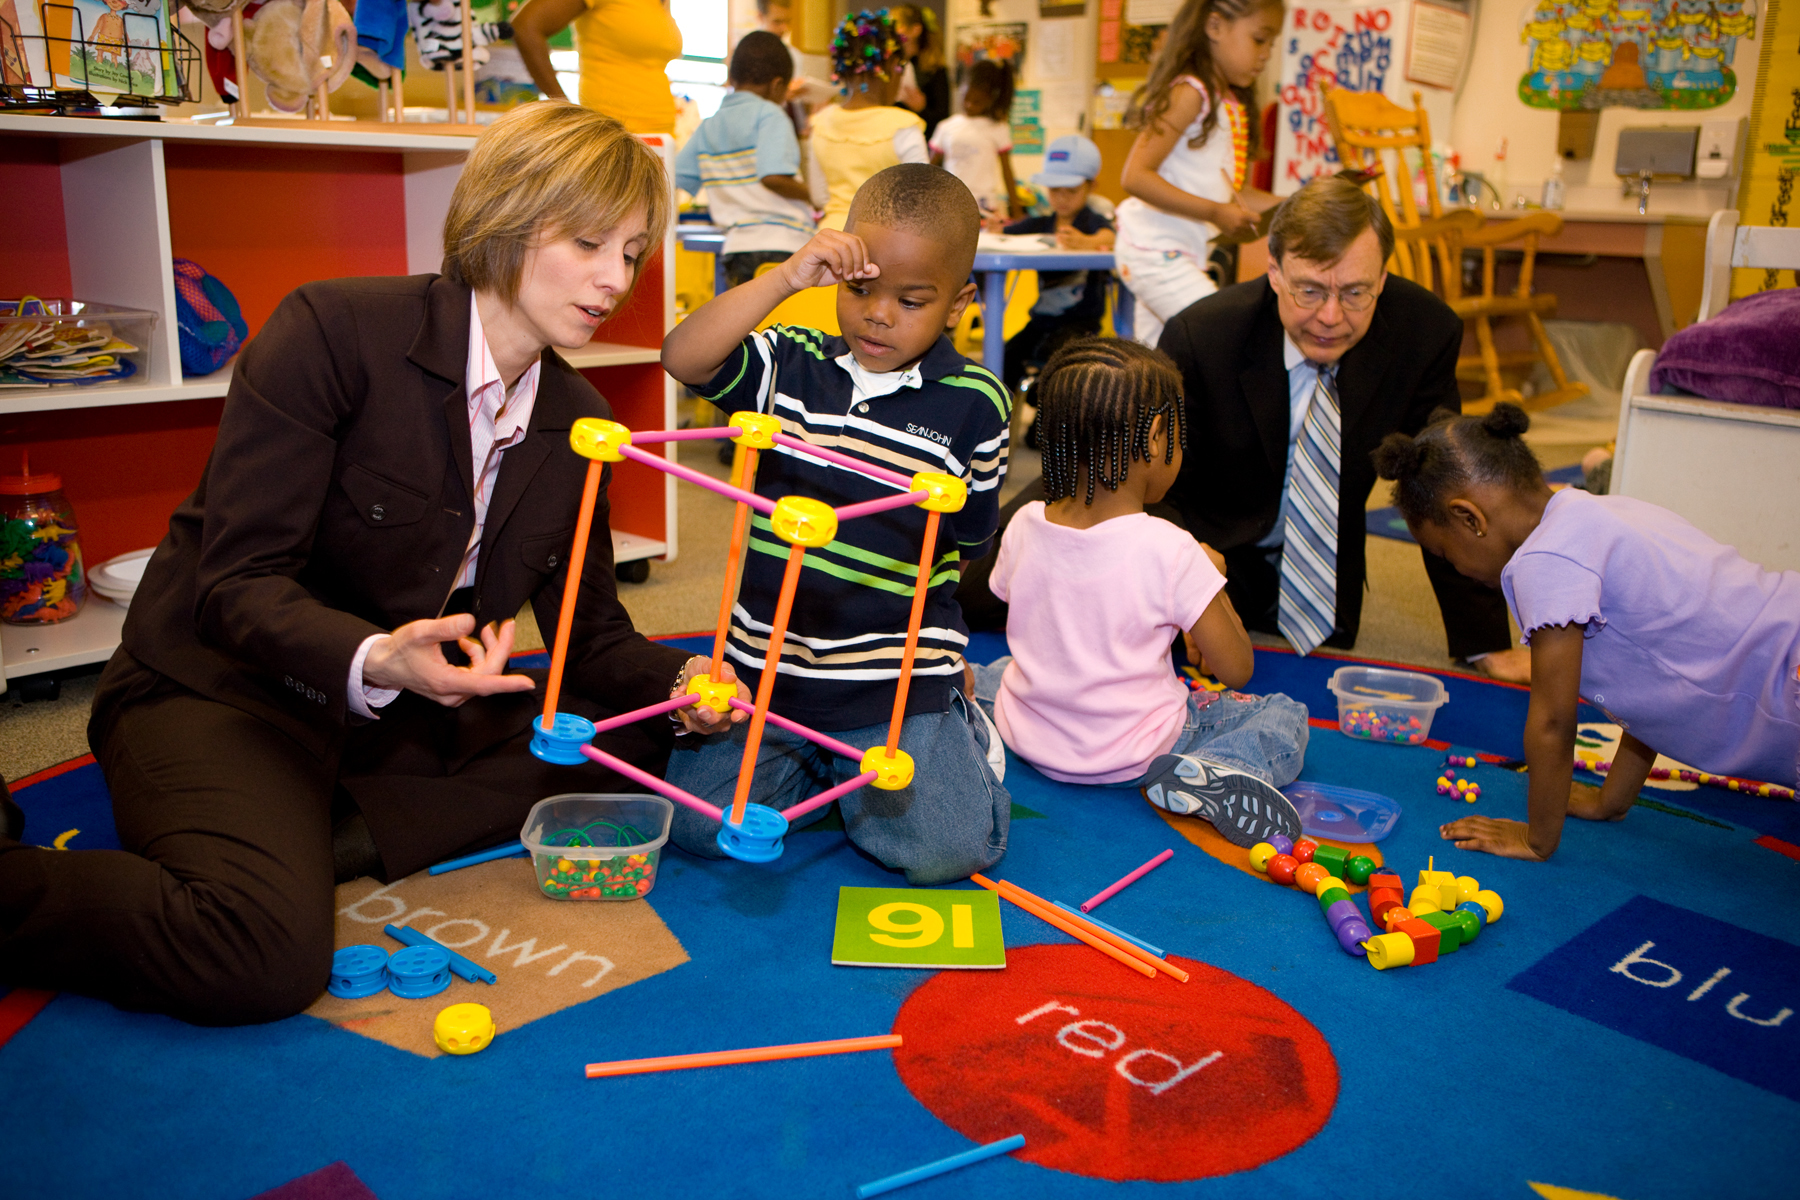 New Technique Developed At Ub For Teaching Math To Preschoolers Adds Up